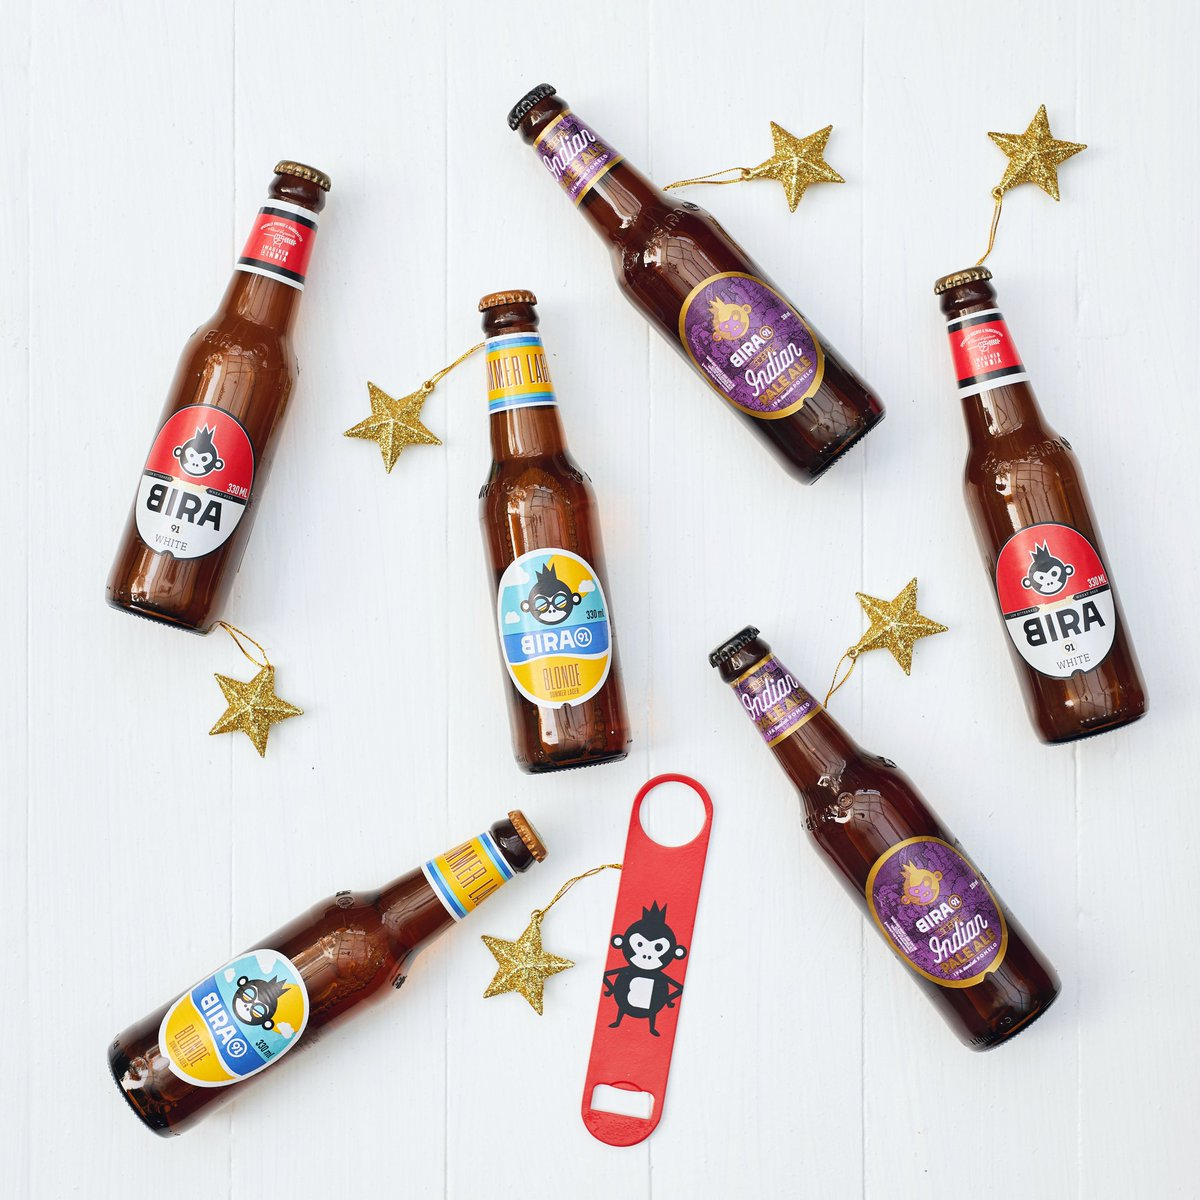 366 new days 366 new excuses to crack open a cold one! Cheers to a new decade 🍻 . . . #Bira91 #Bira91Beers #happynewyear #nye  #BlondeSummerLager #Bira91BlondeSummer #TheIndianPaleAle #Bira91White https://t.co/SrkQJSmk9m